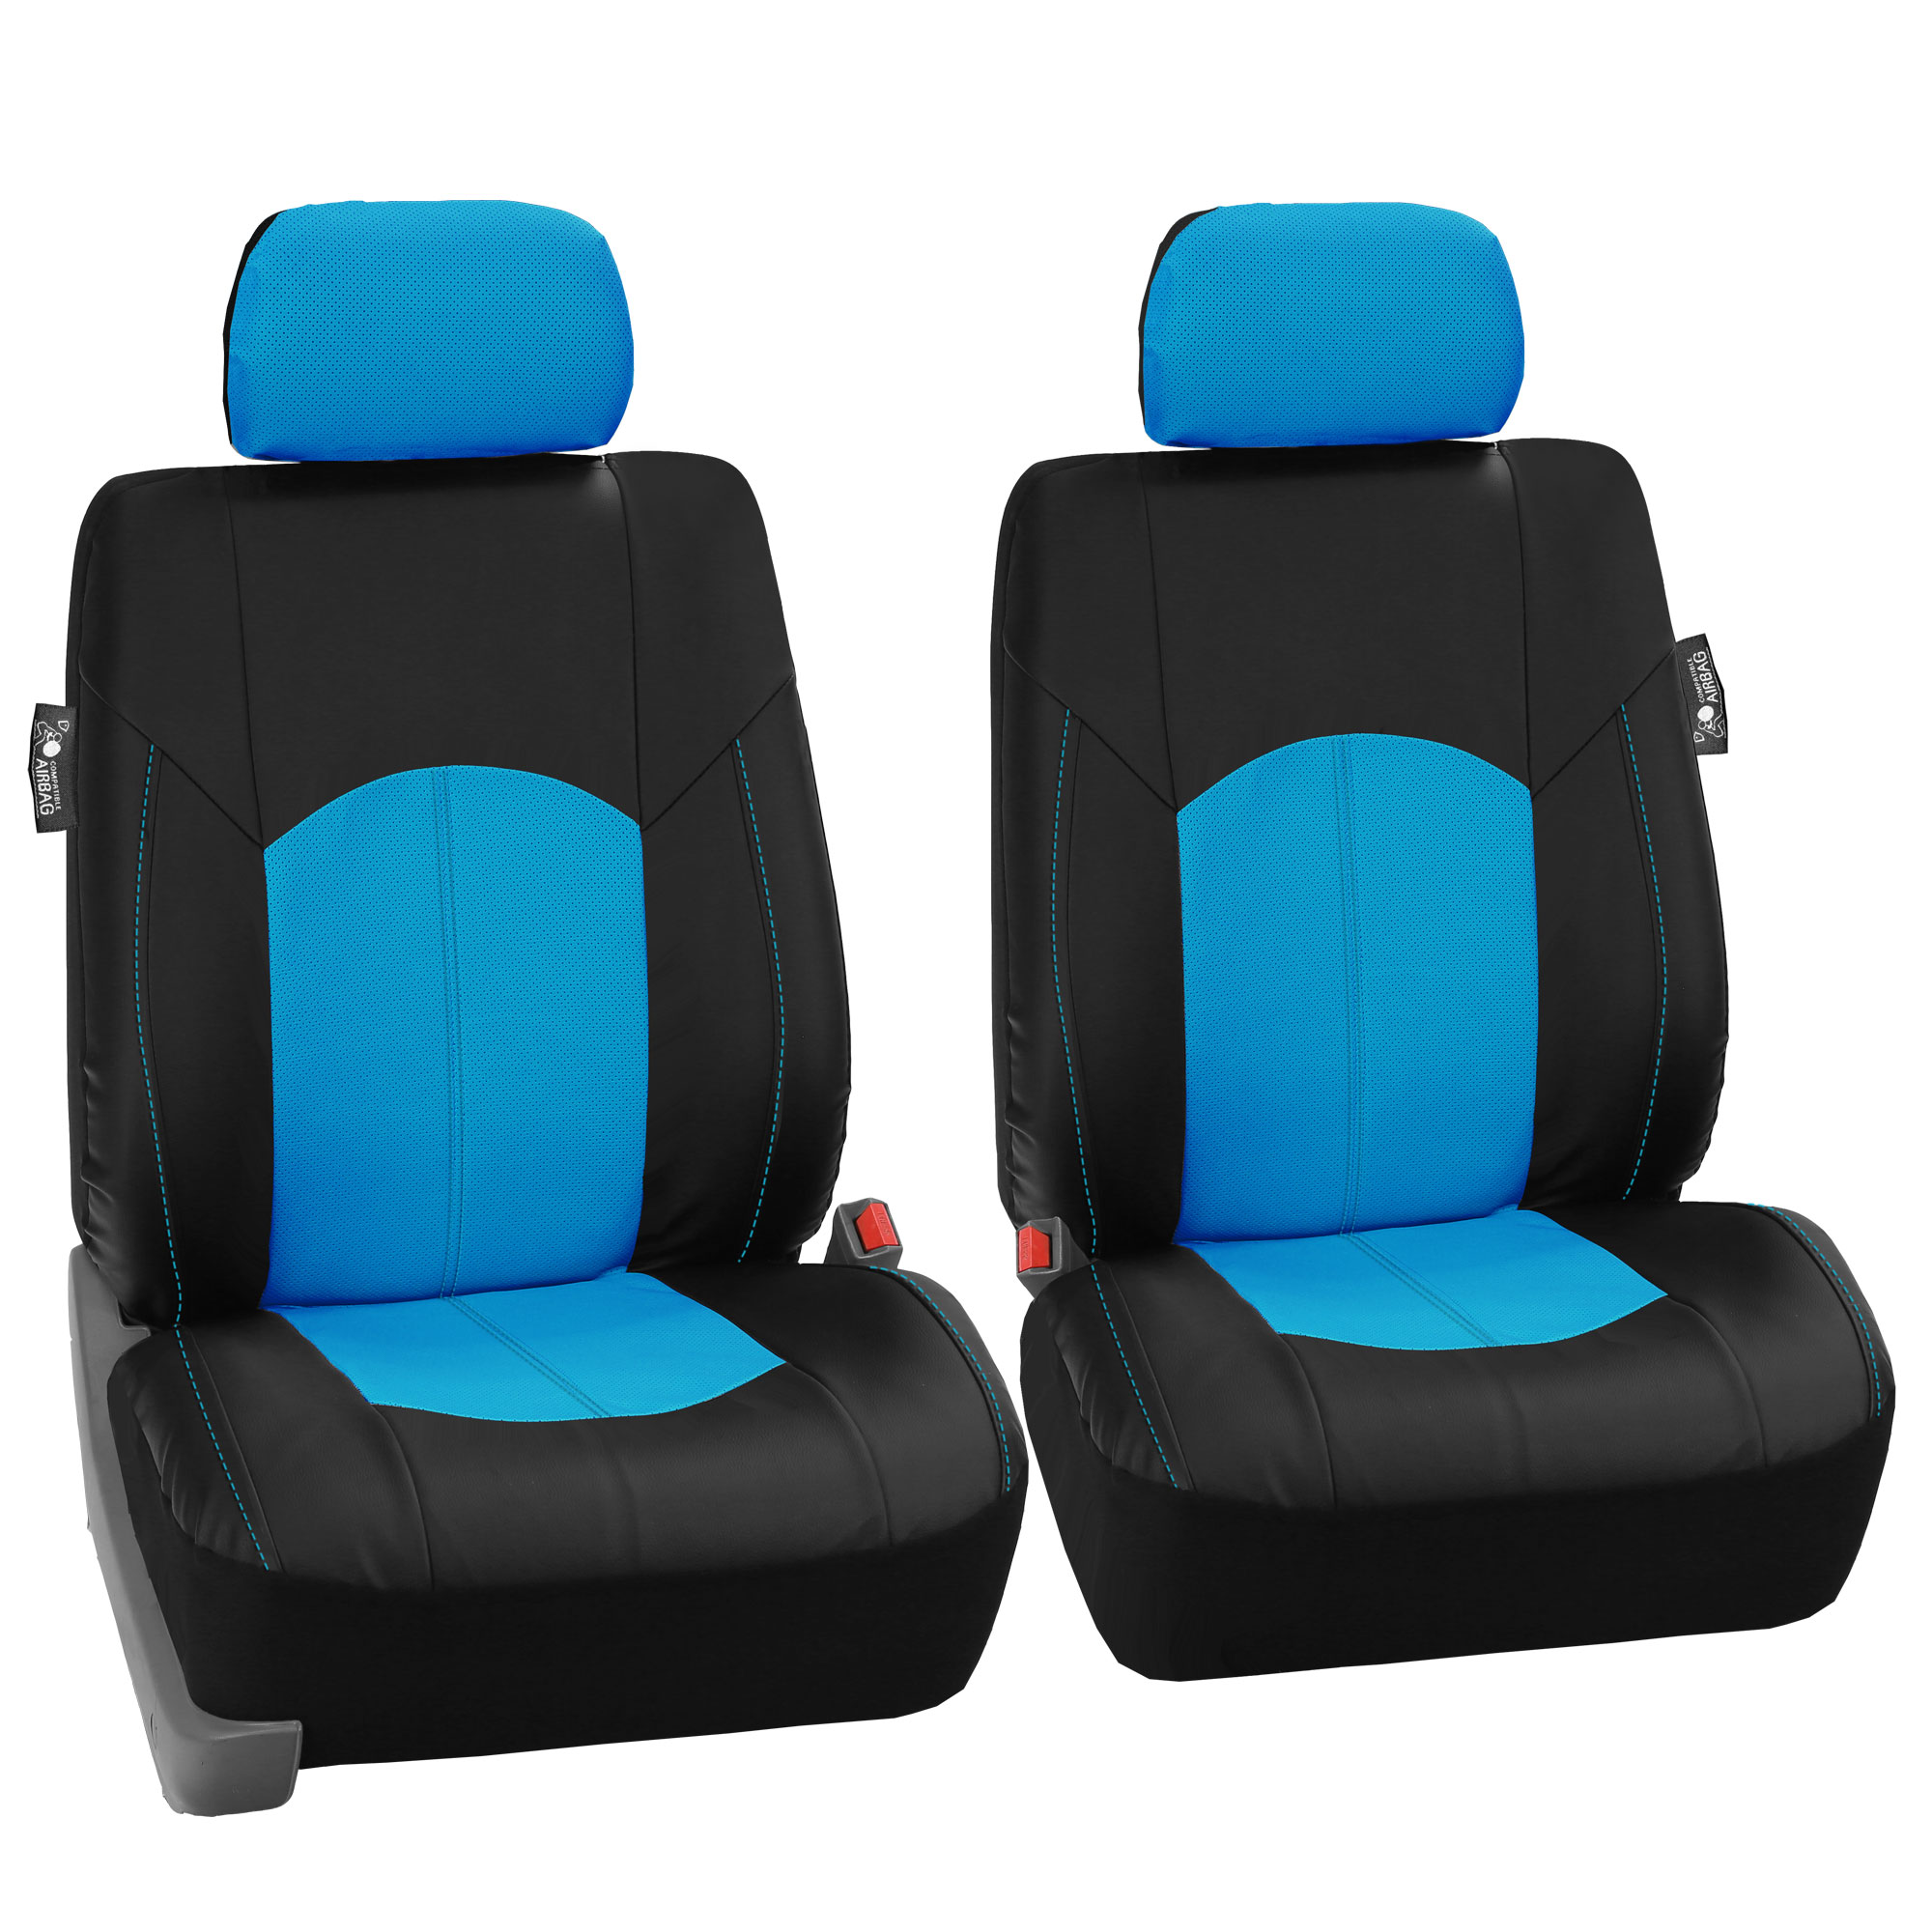 FH Group, Perforated Leather Front Bucket Seat Covers for Auto Car Sedan SUV Van, Two Front Bucket Seat Covers, 8 Colors